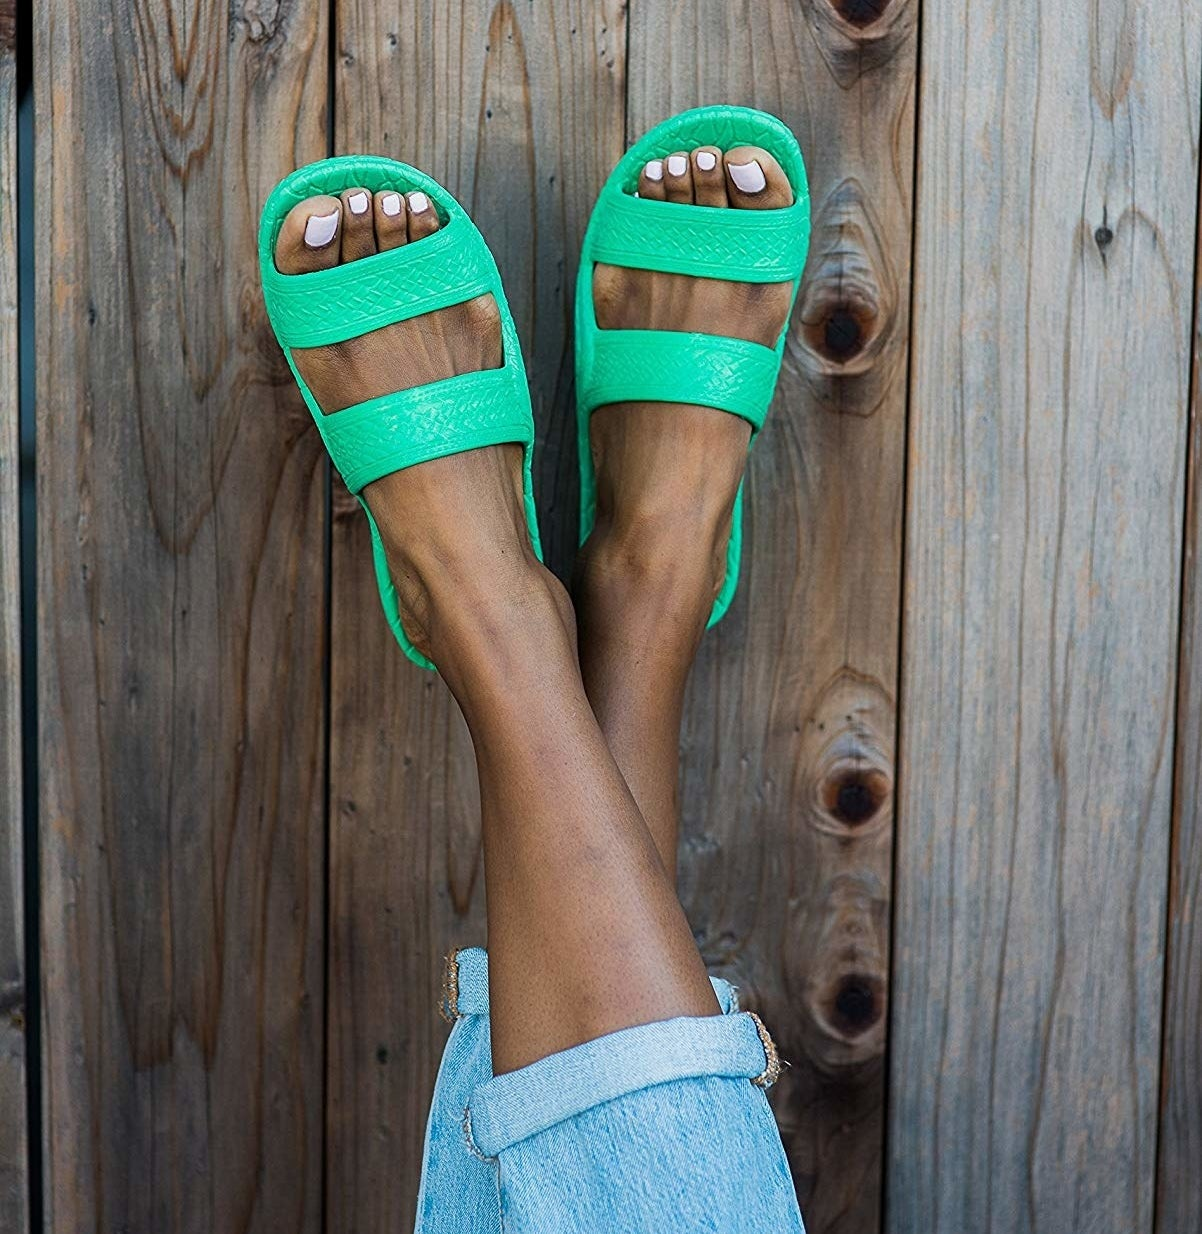 model wearing slides in spring green color